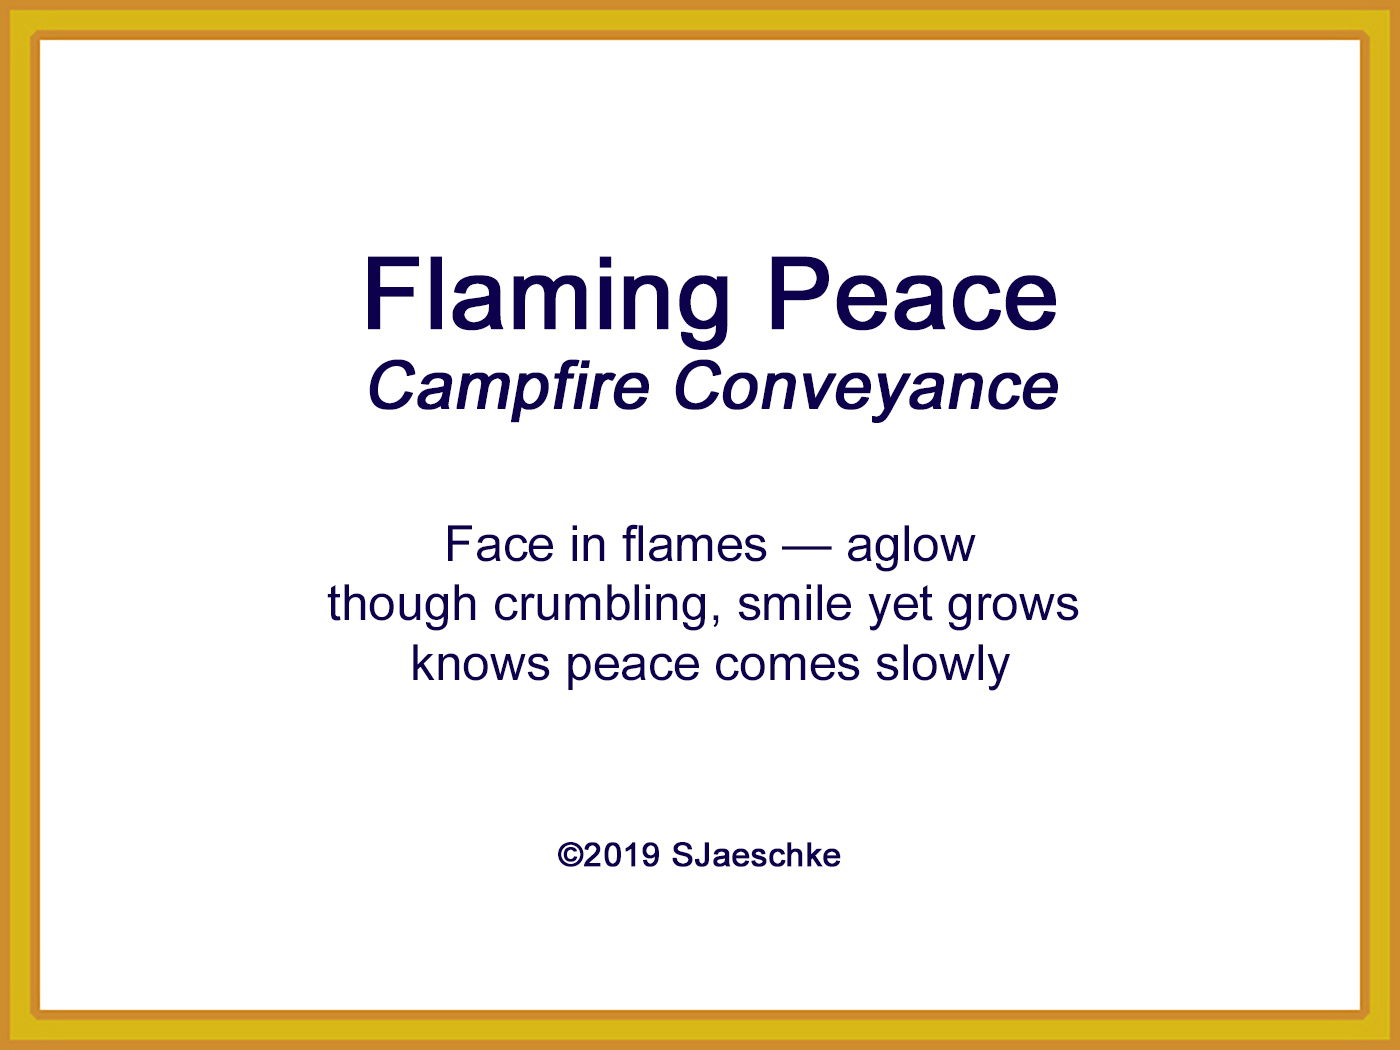 Post_2019-04-14_Poem_FlamingPeace